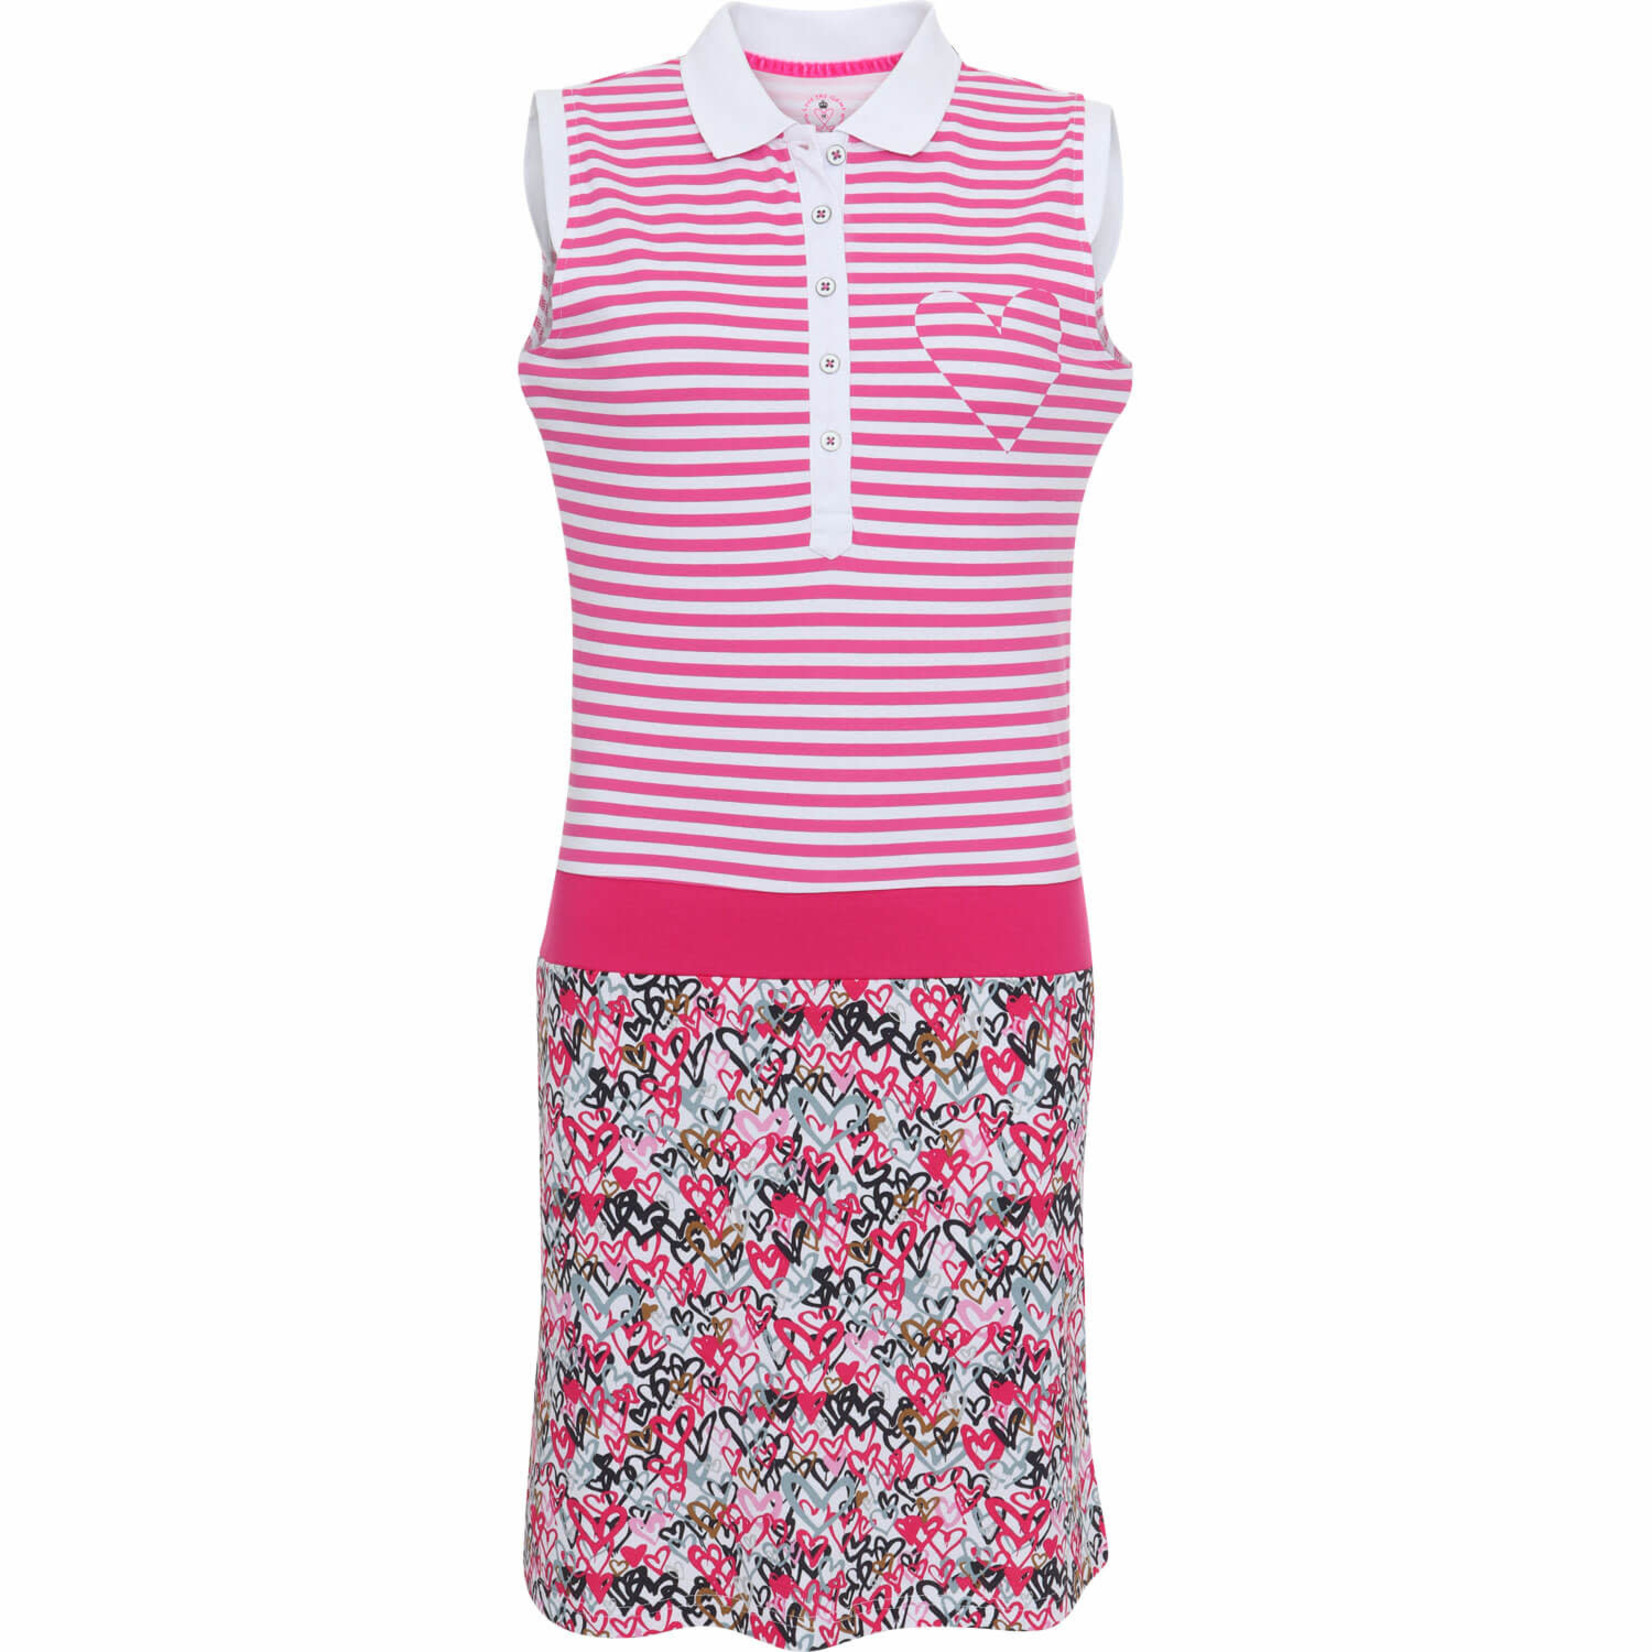 Girls Golf Girls Golf Dress, Love Is In The Air pink/black/hearts S